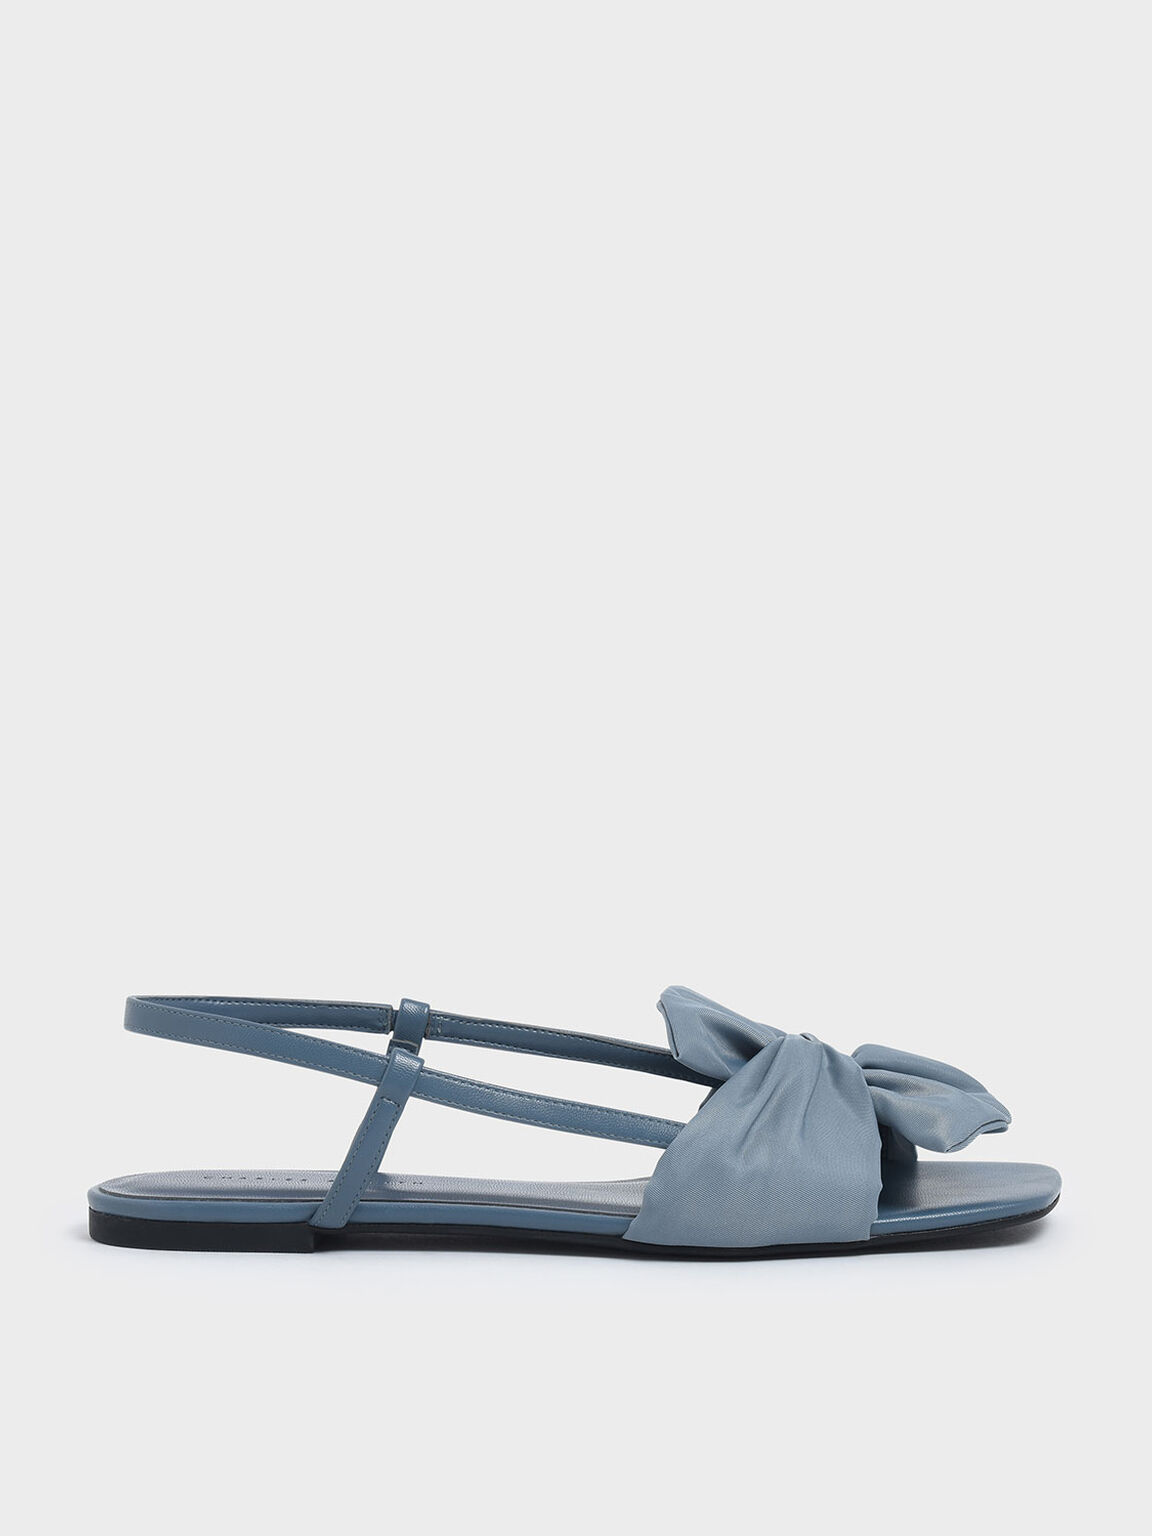 Grosgrain Bow Slingback Flats, Light Blue, hi-res